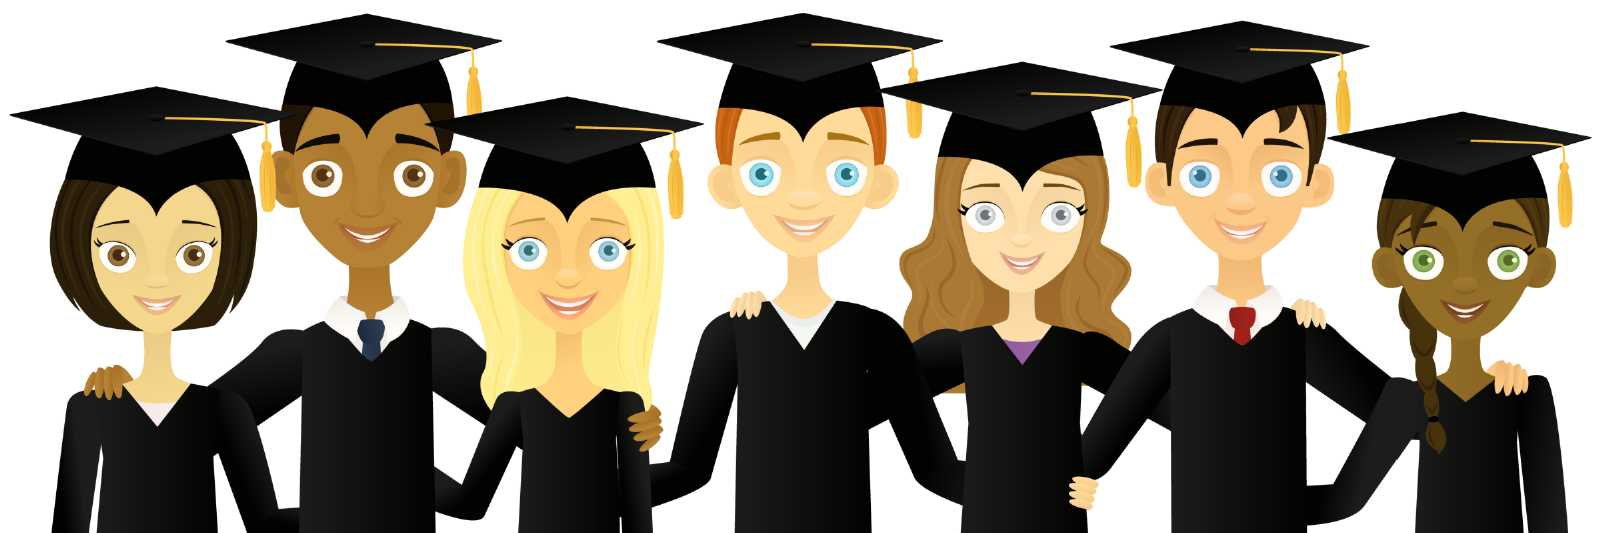 Free College Graduation Cliparts, Download Free Clip Art, Free Clip ... png black and white library